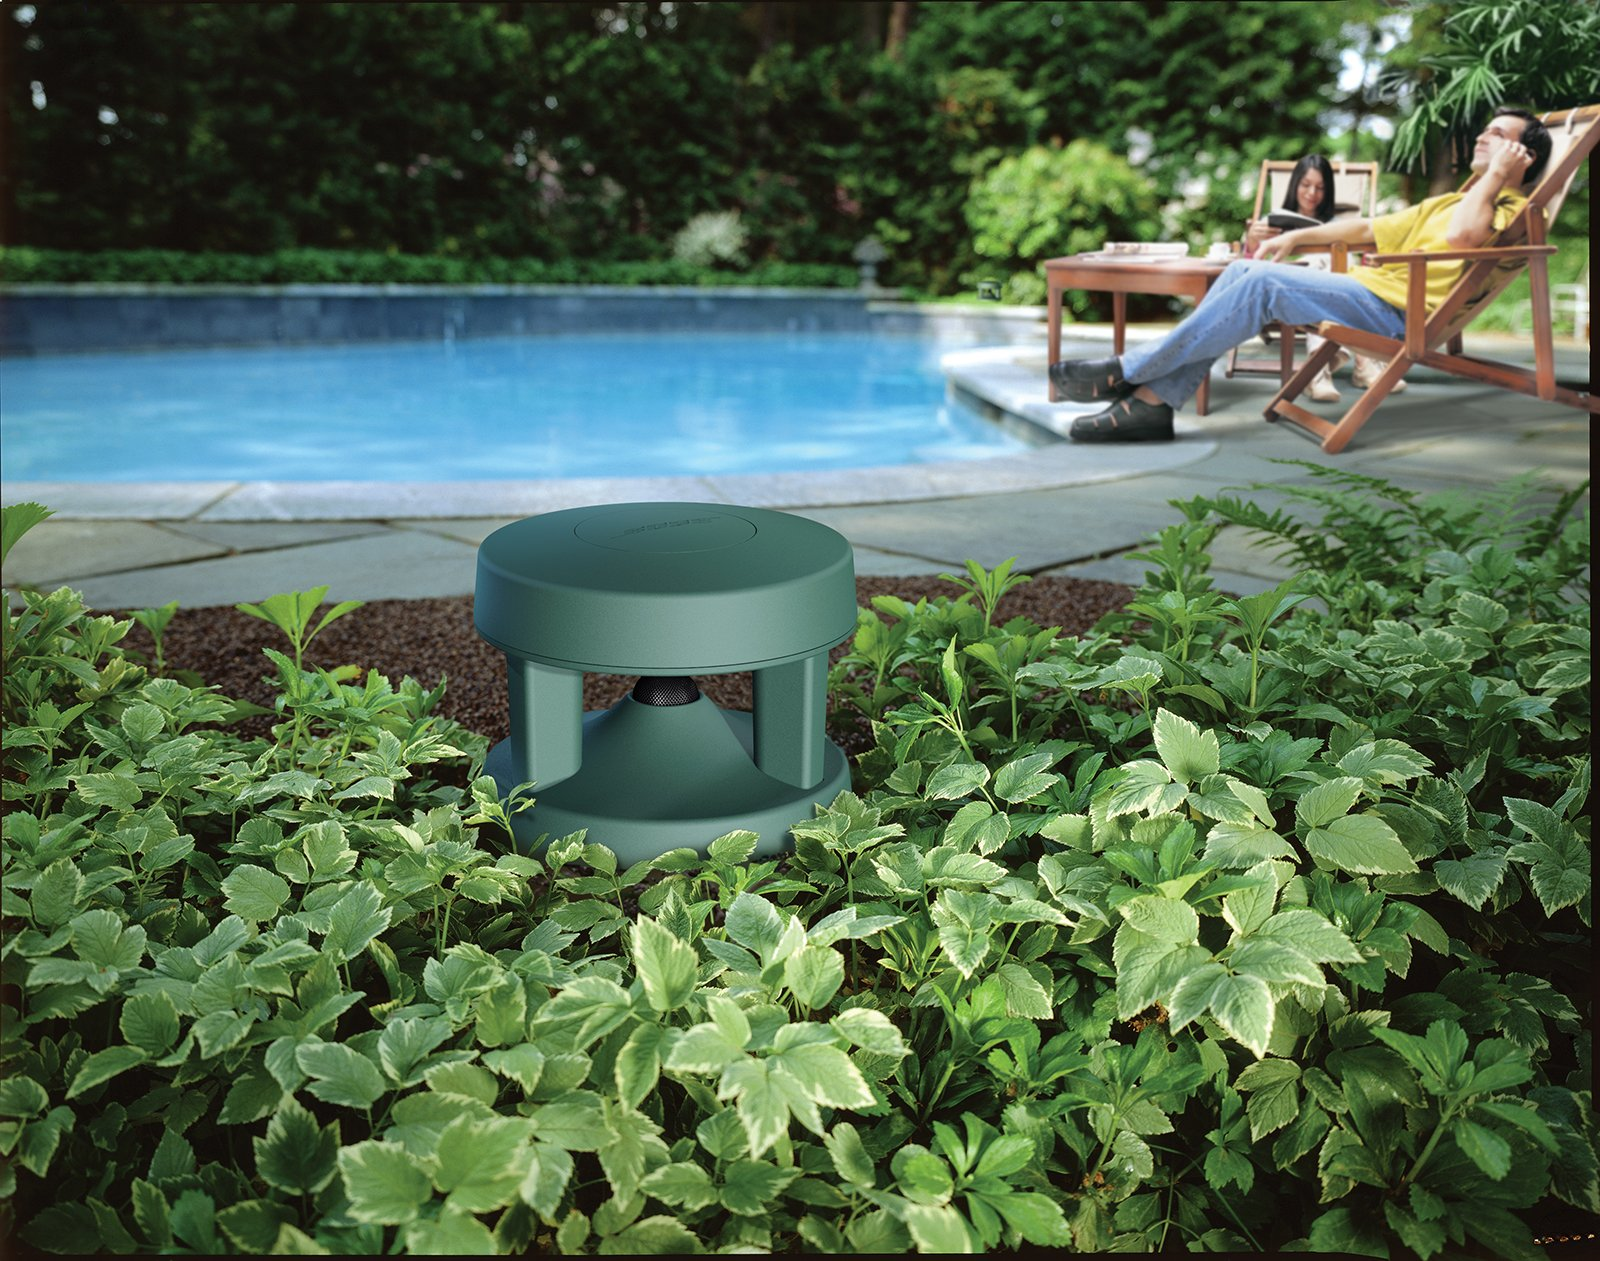 Bose Free Space 51 Outdoor In-Ground Speakers (Green) 3 Downward firing 4-1/4 full range driver.Dimensions-Each speaker:36 cm H x 32 cm W x 32 cm D Innovative radial design disperse sound in a 360 degree pattern and centrally located port enhances low-frequency performance to deliver the depth and richness of music outdoors Rugged, flexible design withstands temperatures from -40 to +150 degrees Fahrenheit, and passed the rigorous salt fog test 66% longer than required by the Marine Industry Standard